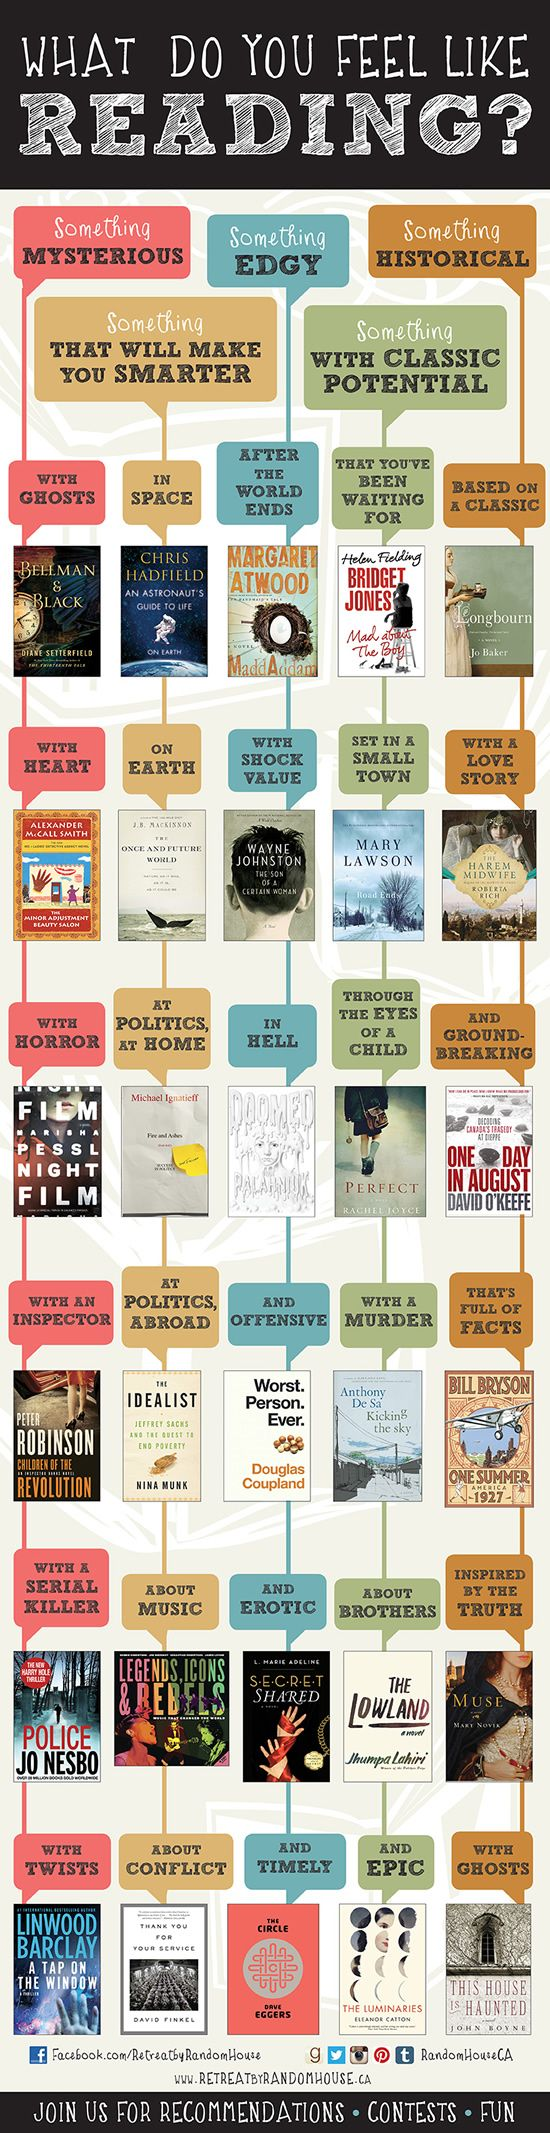 What Do You Feel Like Reading? #Infographic #books #reading #discovergoodbooks #booksuggestions ○ http://astore.amazon.com/wfsbookseller-20